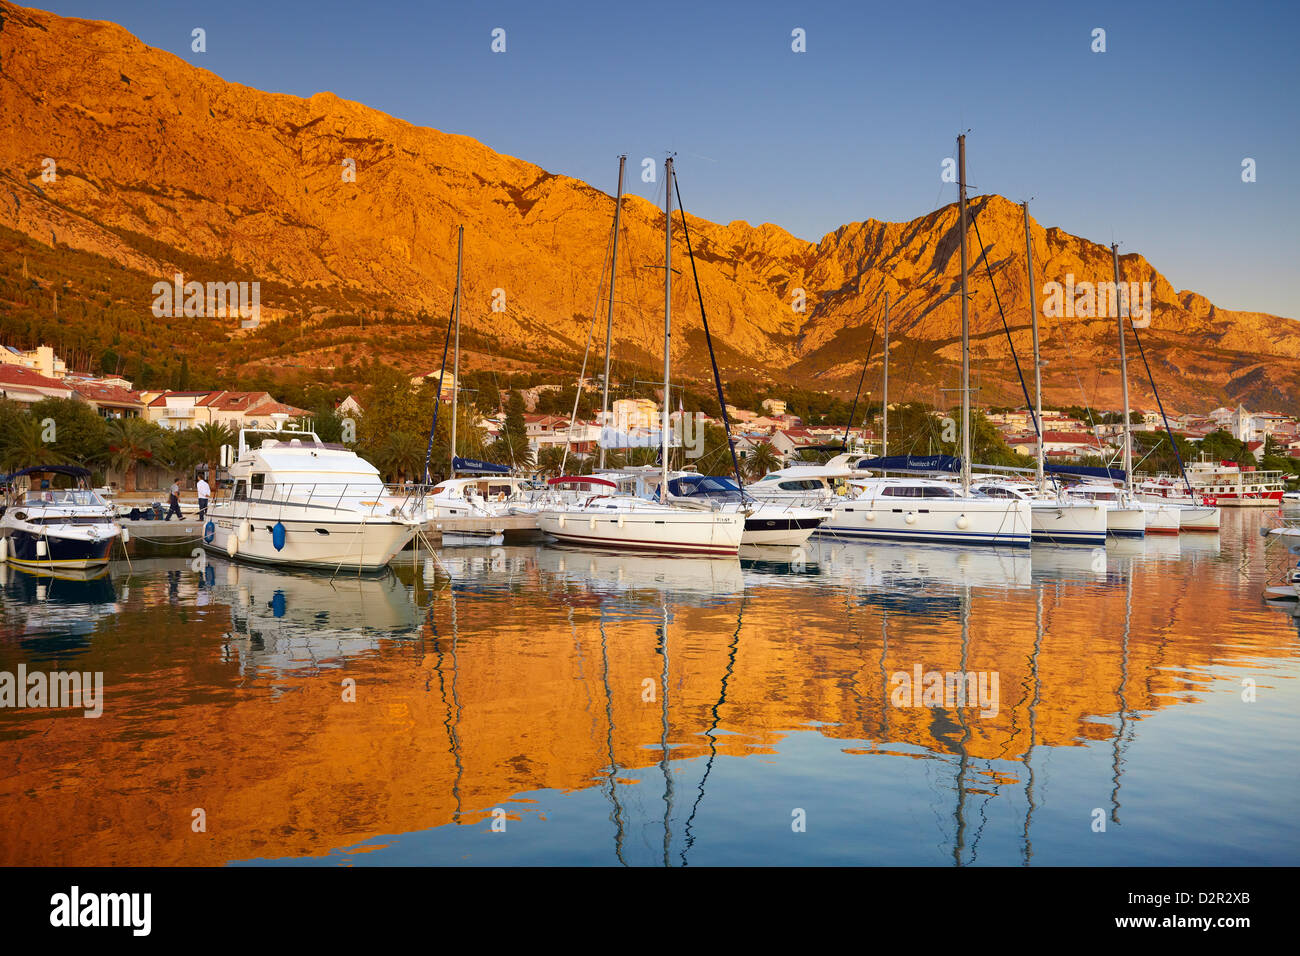 Baska Voda, small harbor in Makarska Riviera, Croatia - Stock Image